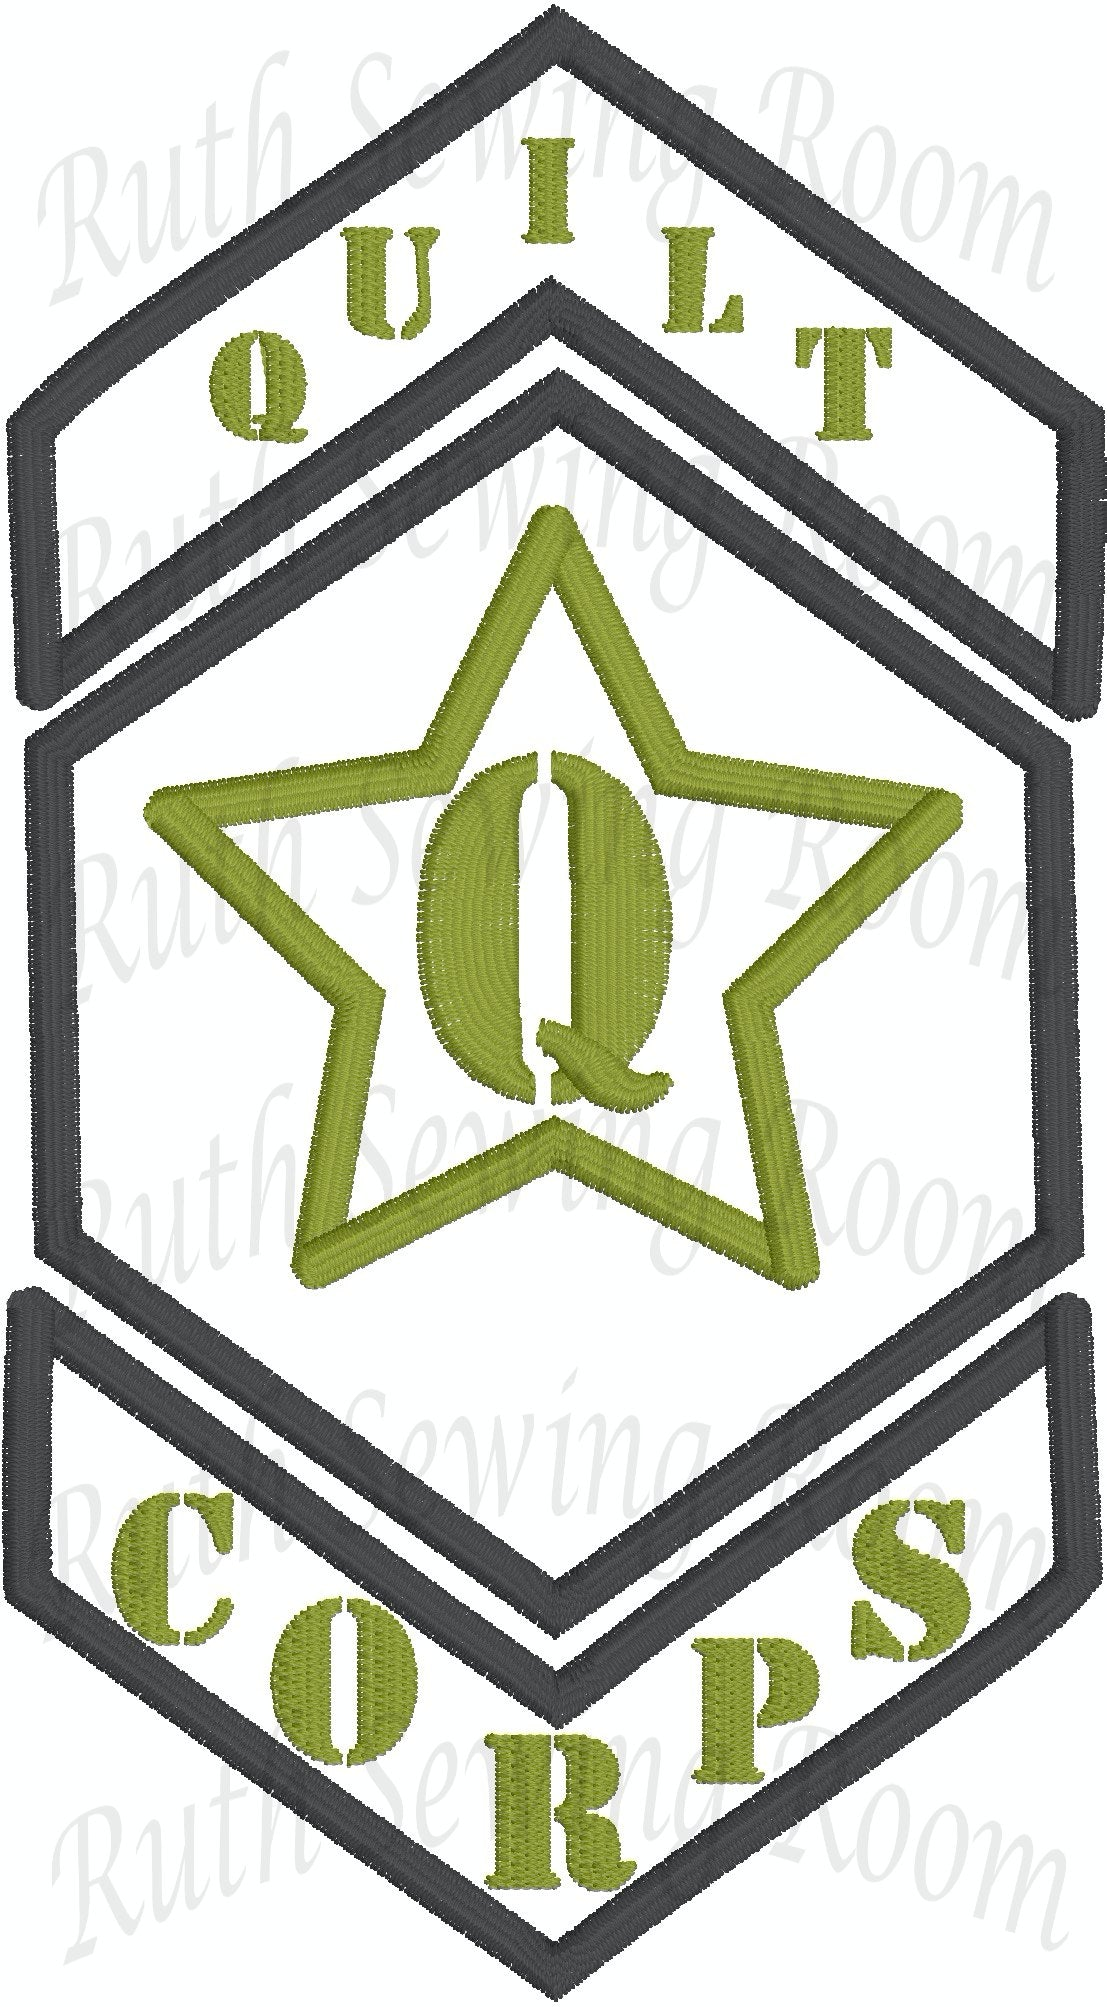 Quilt Corps  Embroidery -Applique - Stitch  Embroidery Design